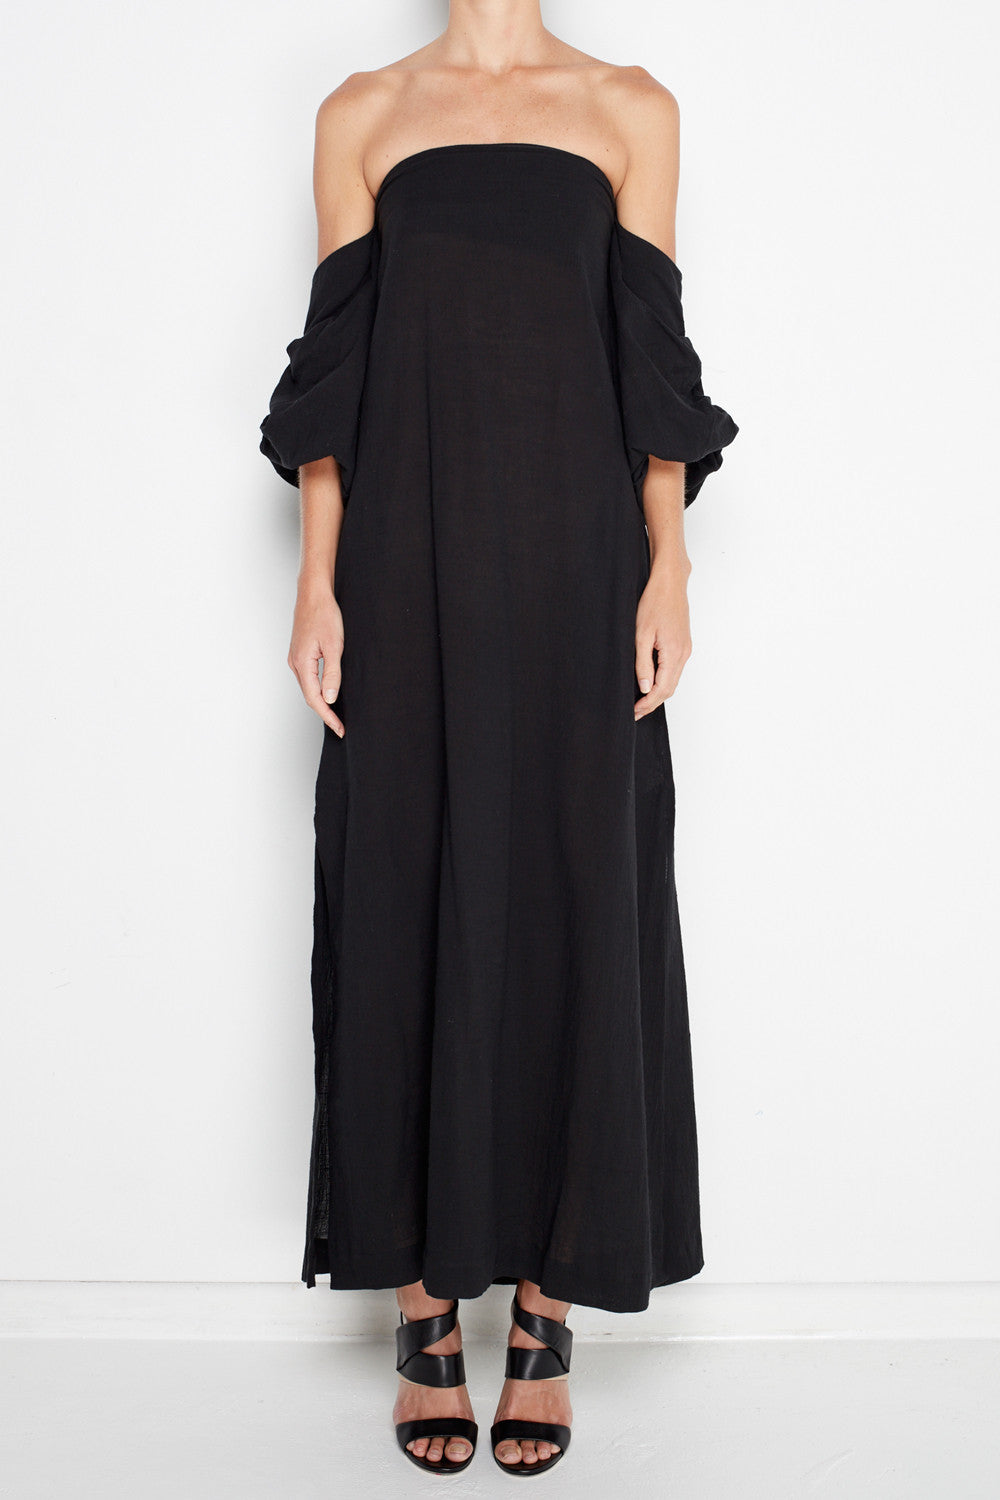 MLM - Pillar Shoulder Midi Dress